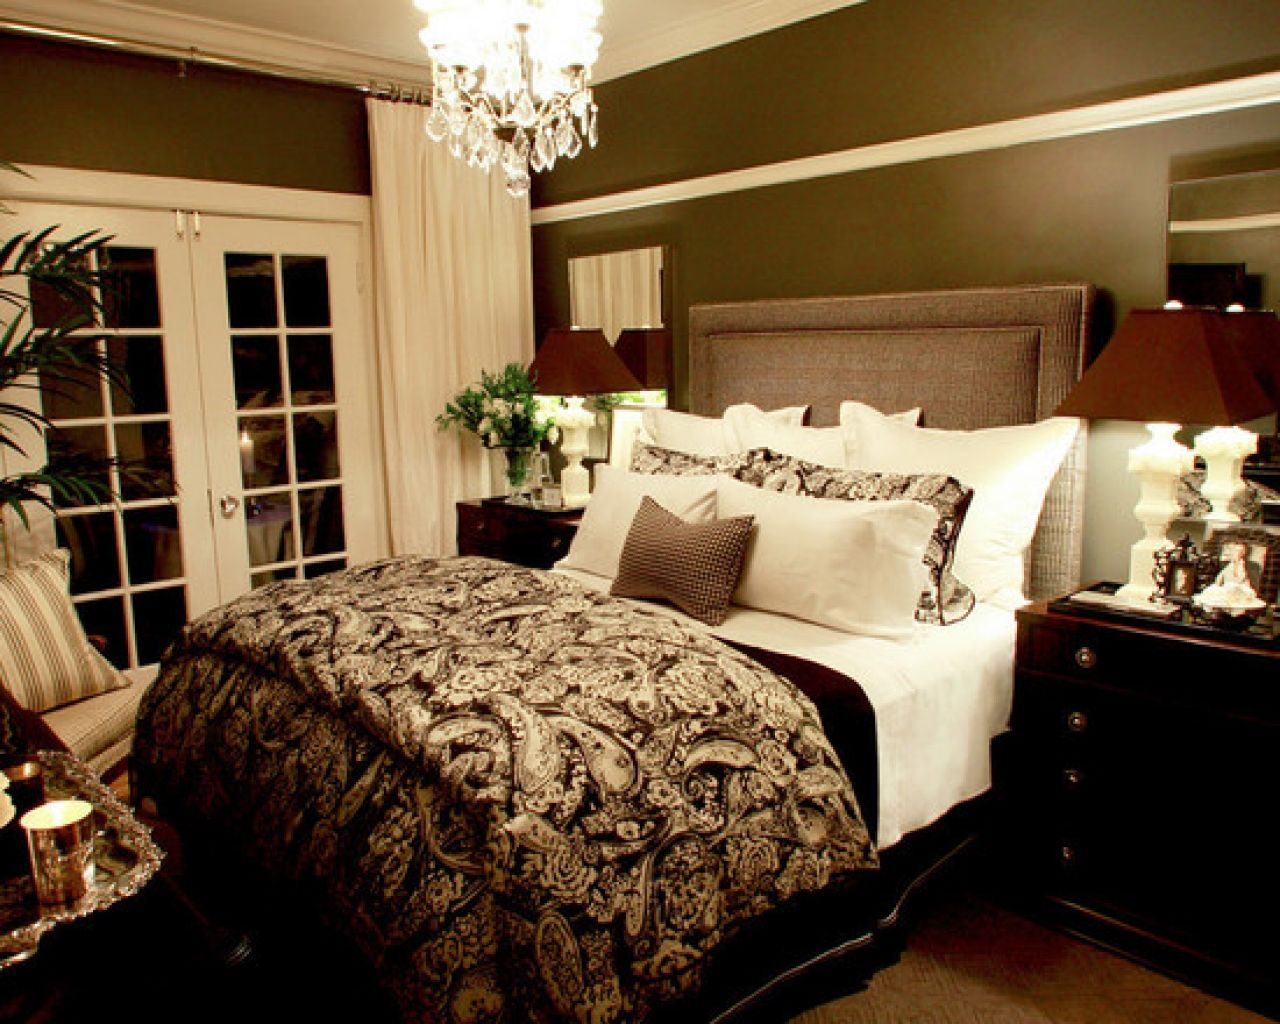 Bedroom Decorations Pinterest Best 25 43 Romantic Bedroom Decor Ideas On Pinterest